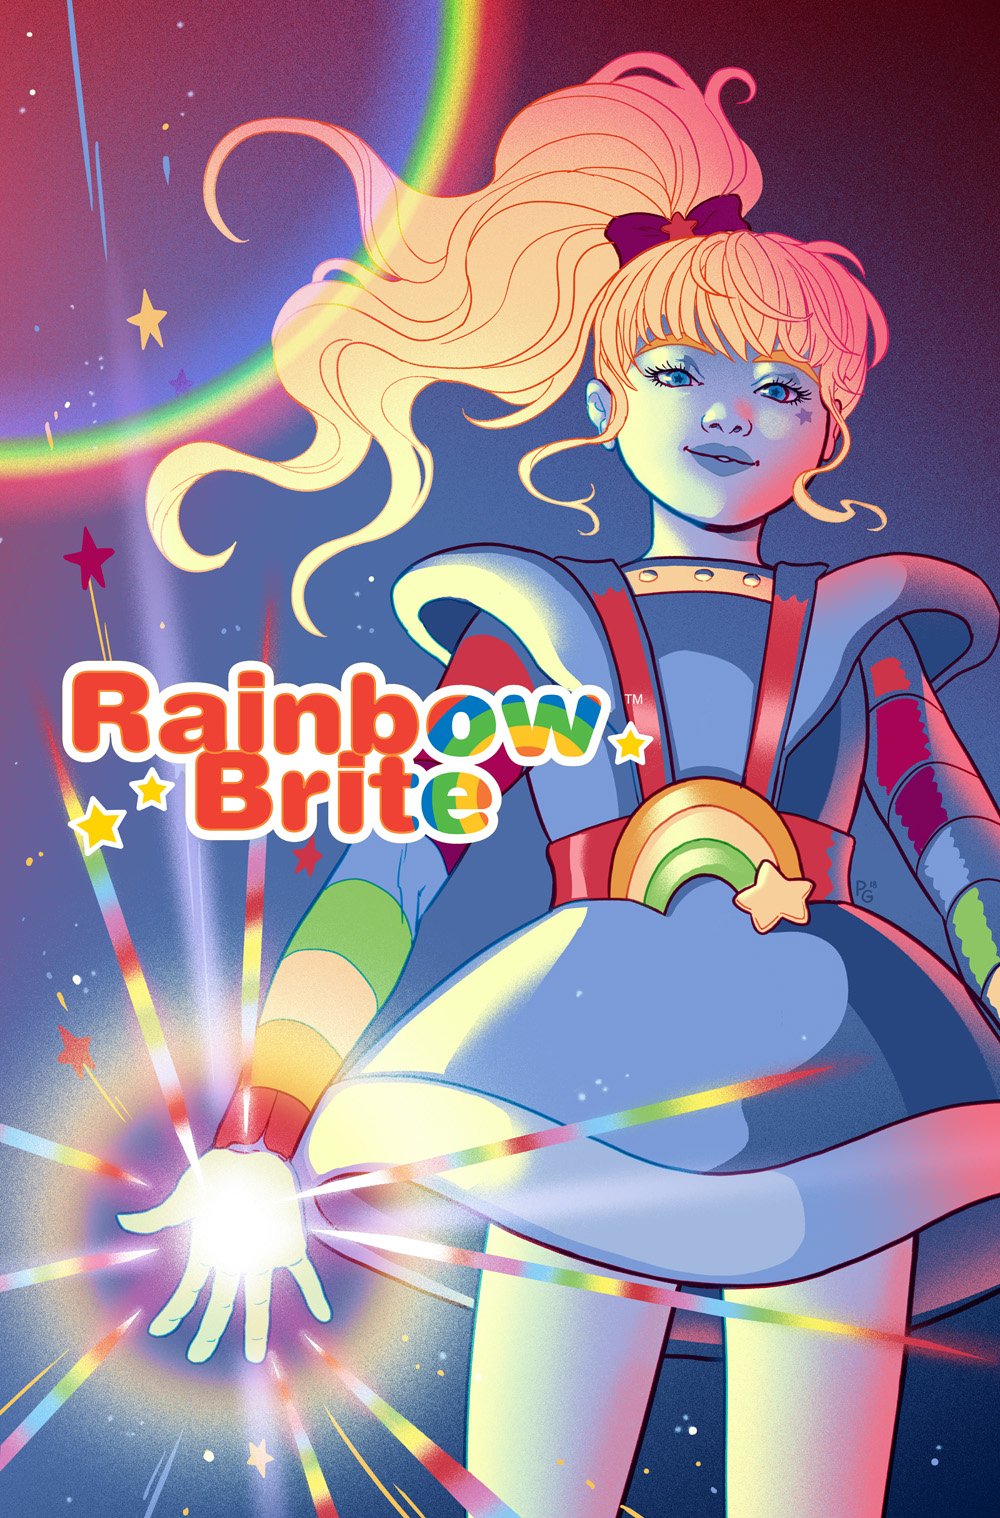 Rainbow_brite_coverv3.jpg